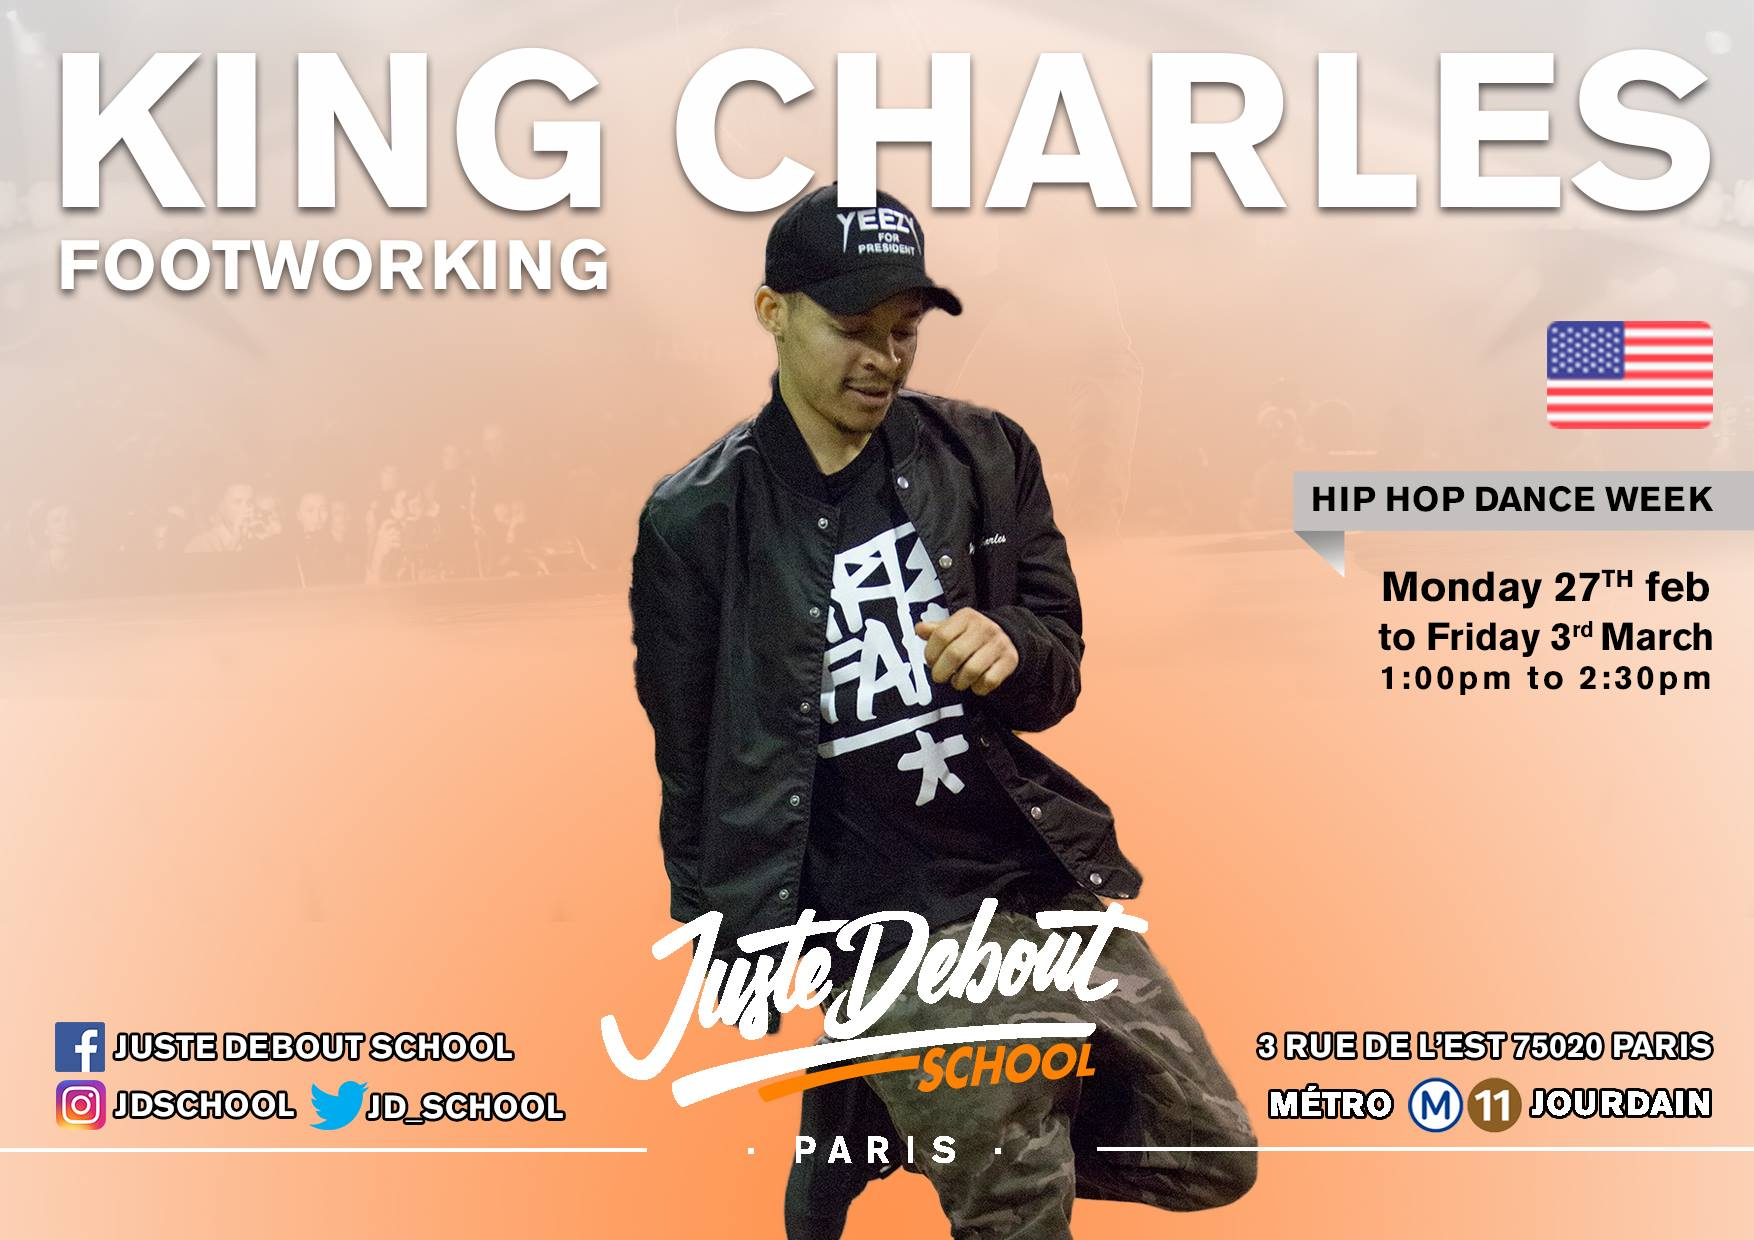 workshops coming right up!